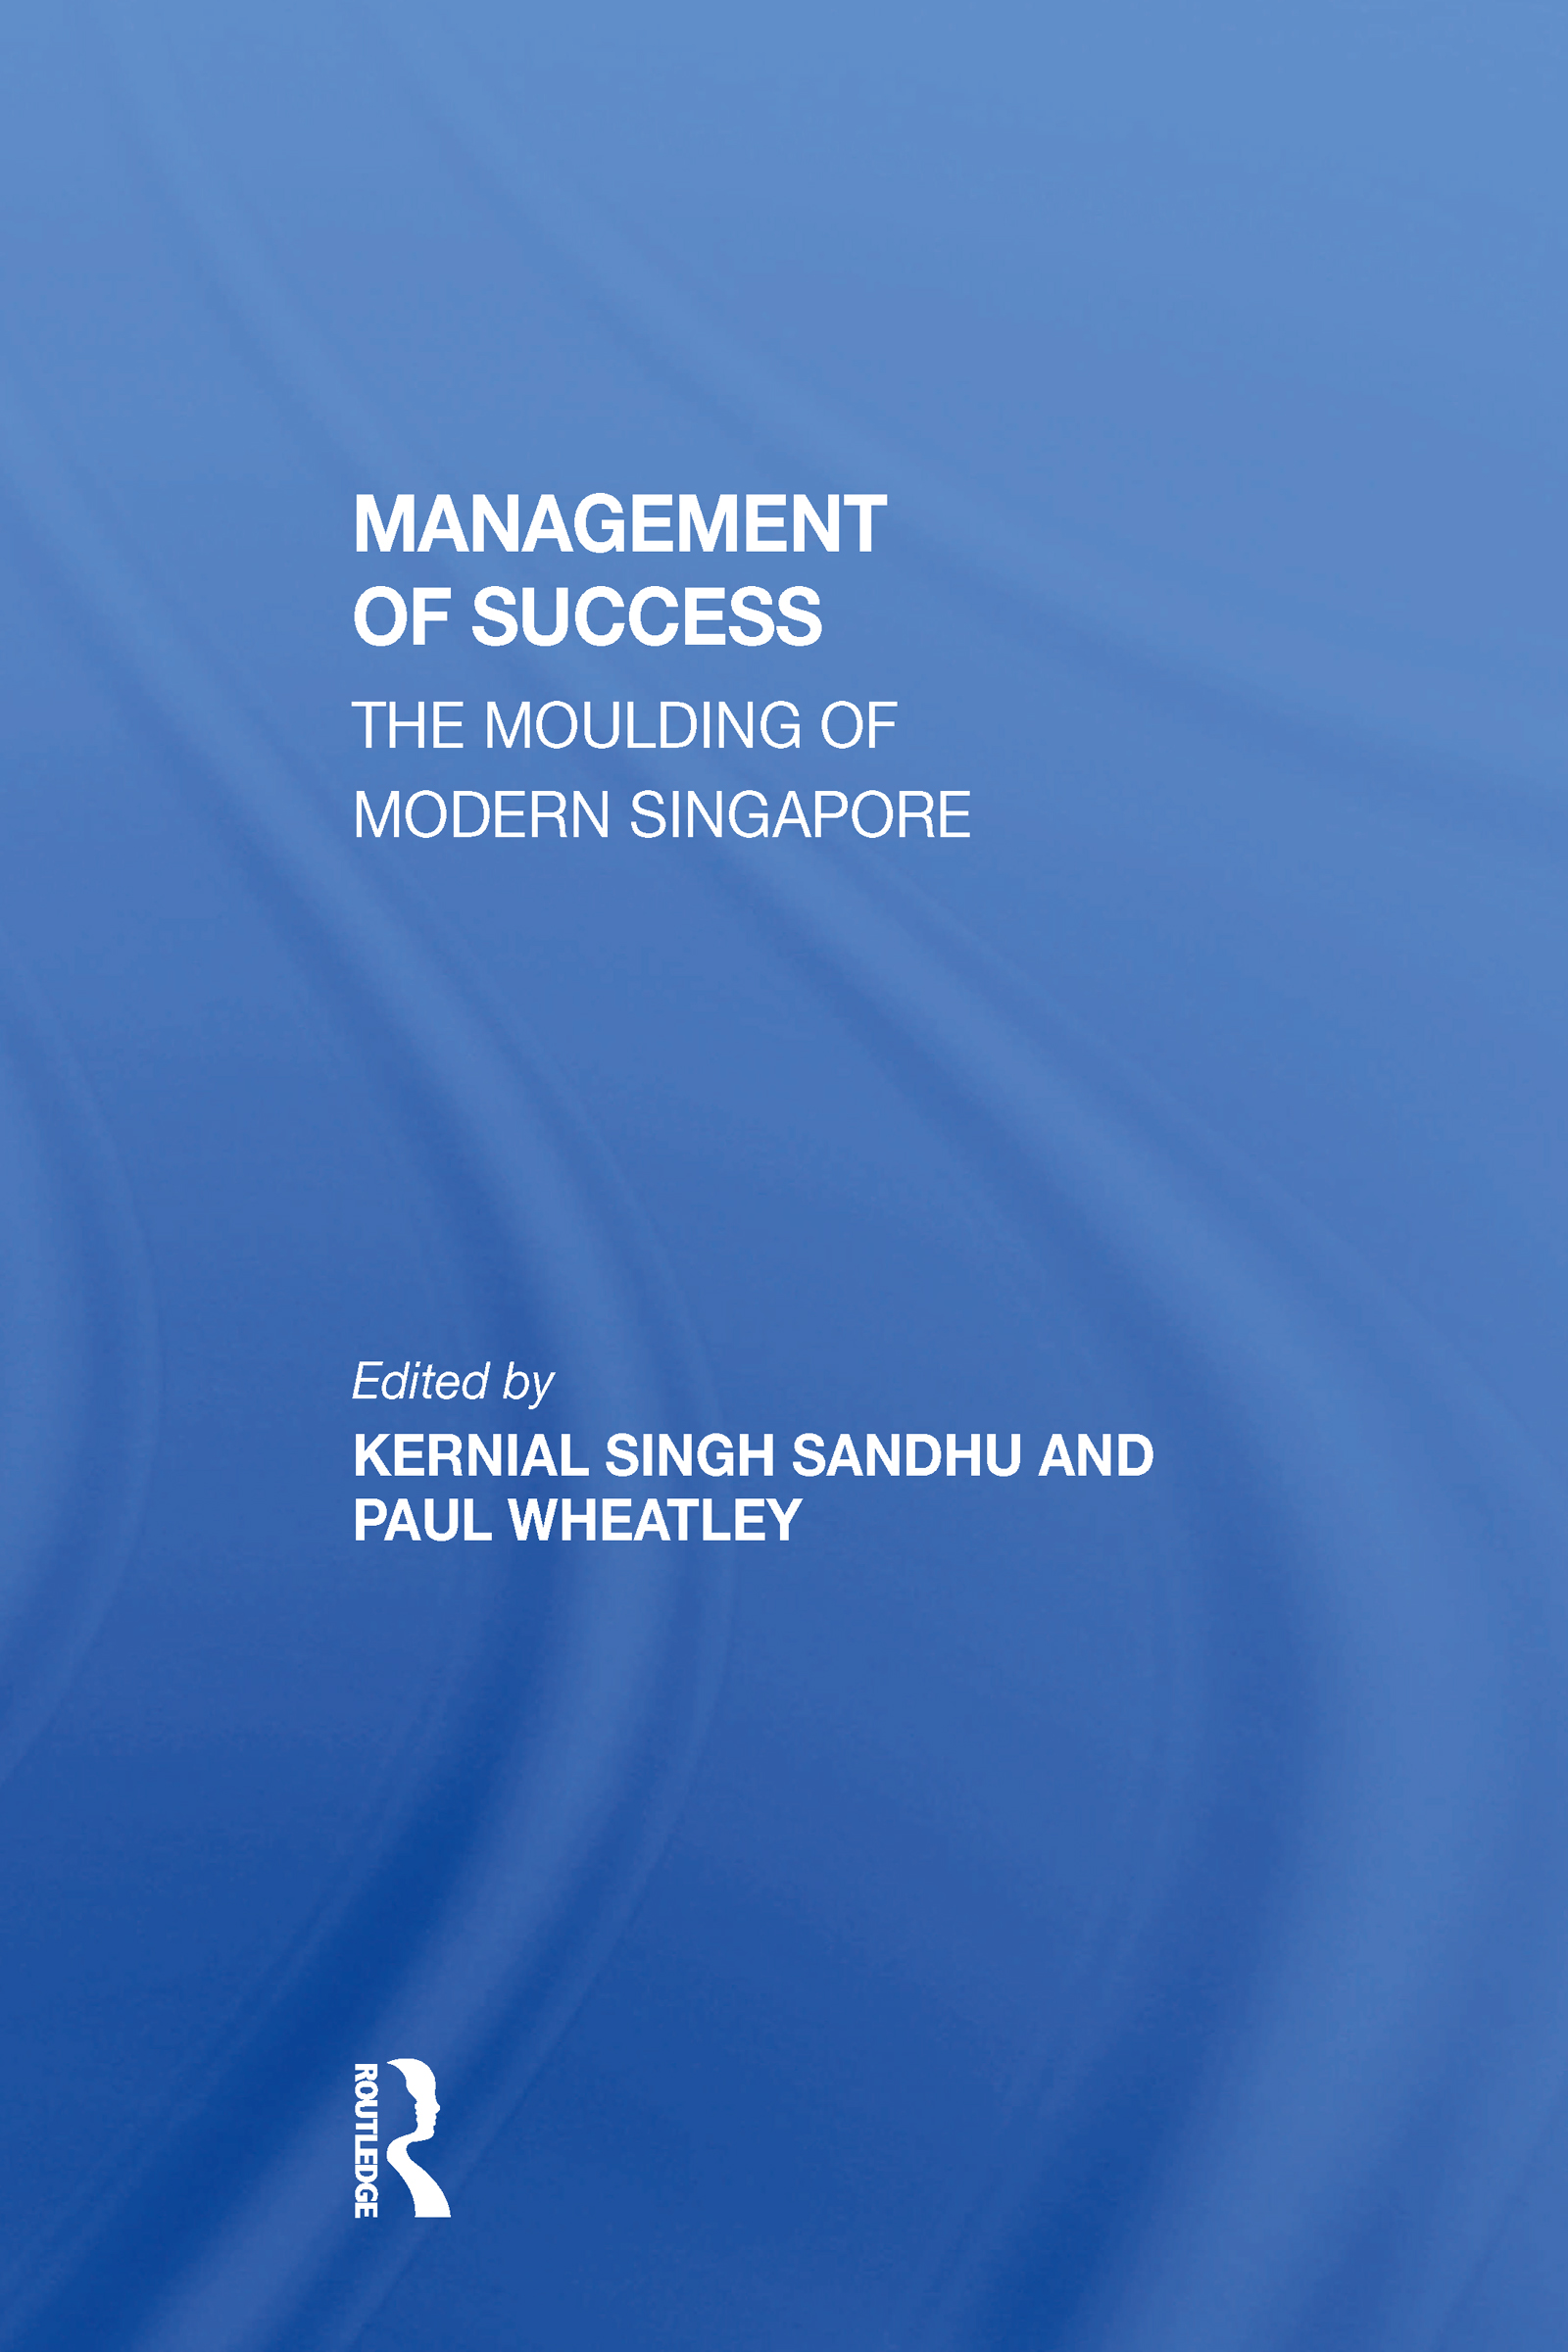 The Management Of Success